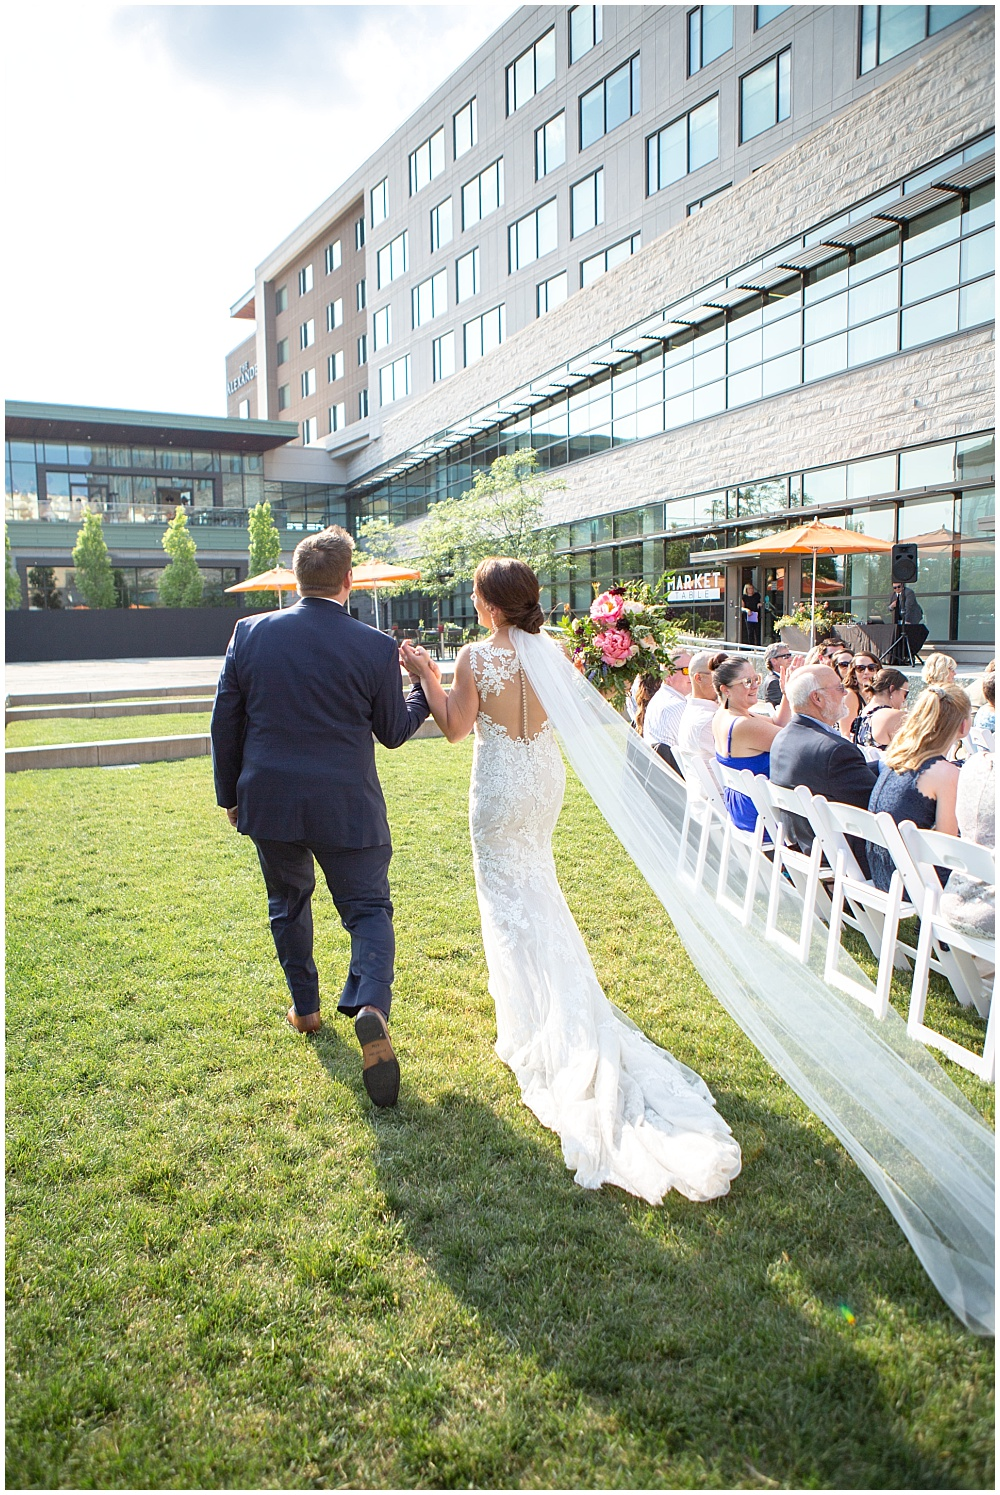 bride and groom ceremony exit, courtyard ceremony, Colorful, modern wedding at The Alexander Hotel | Conforti Photography and Jessica Dum Wedding Coordination